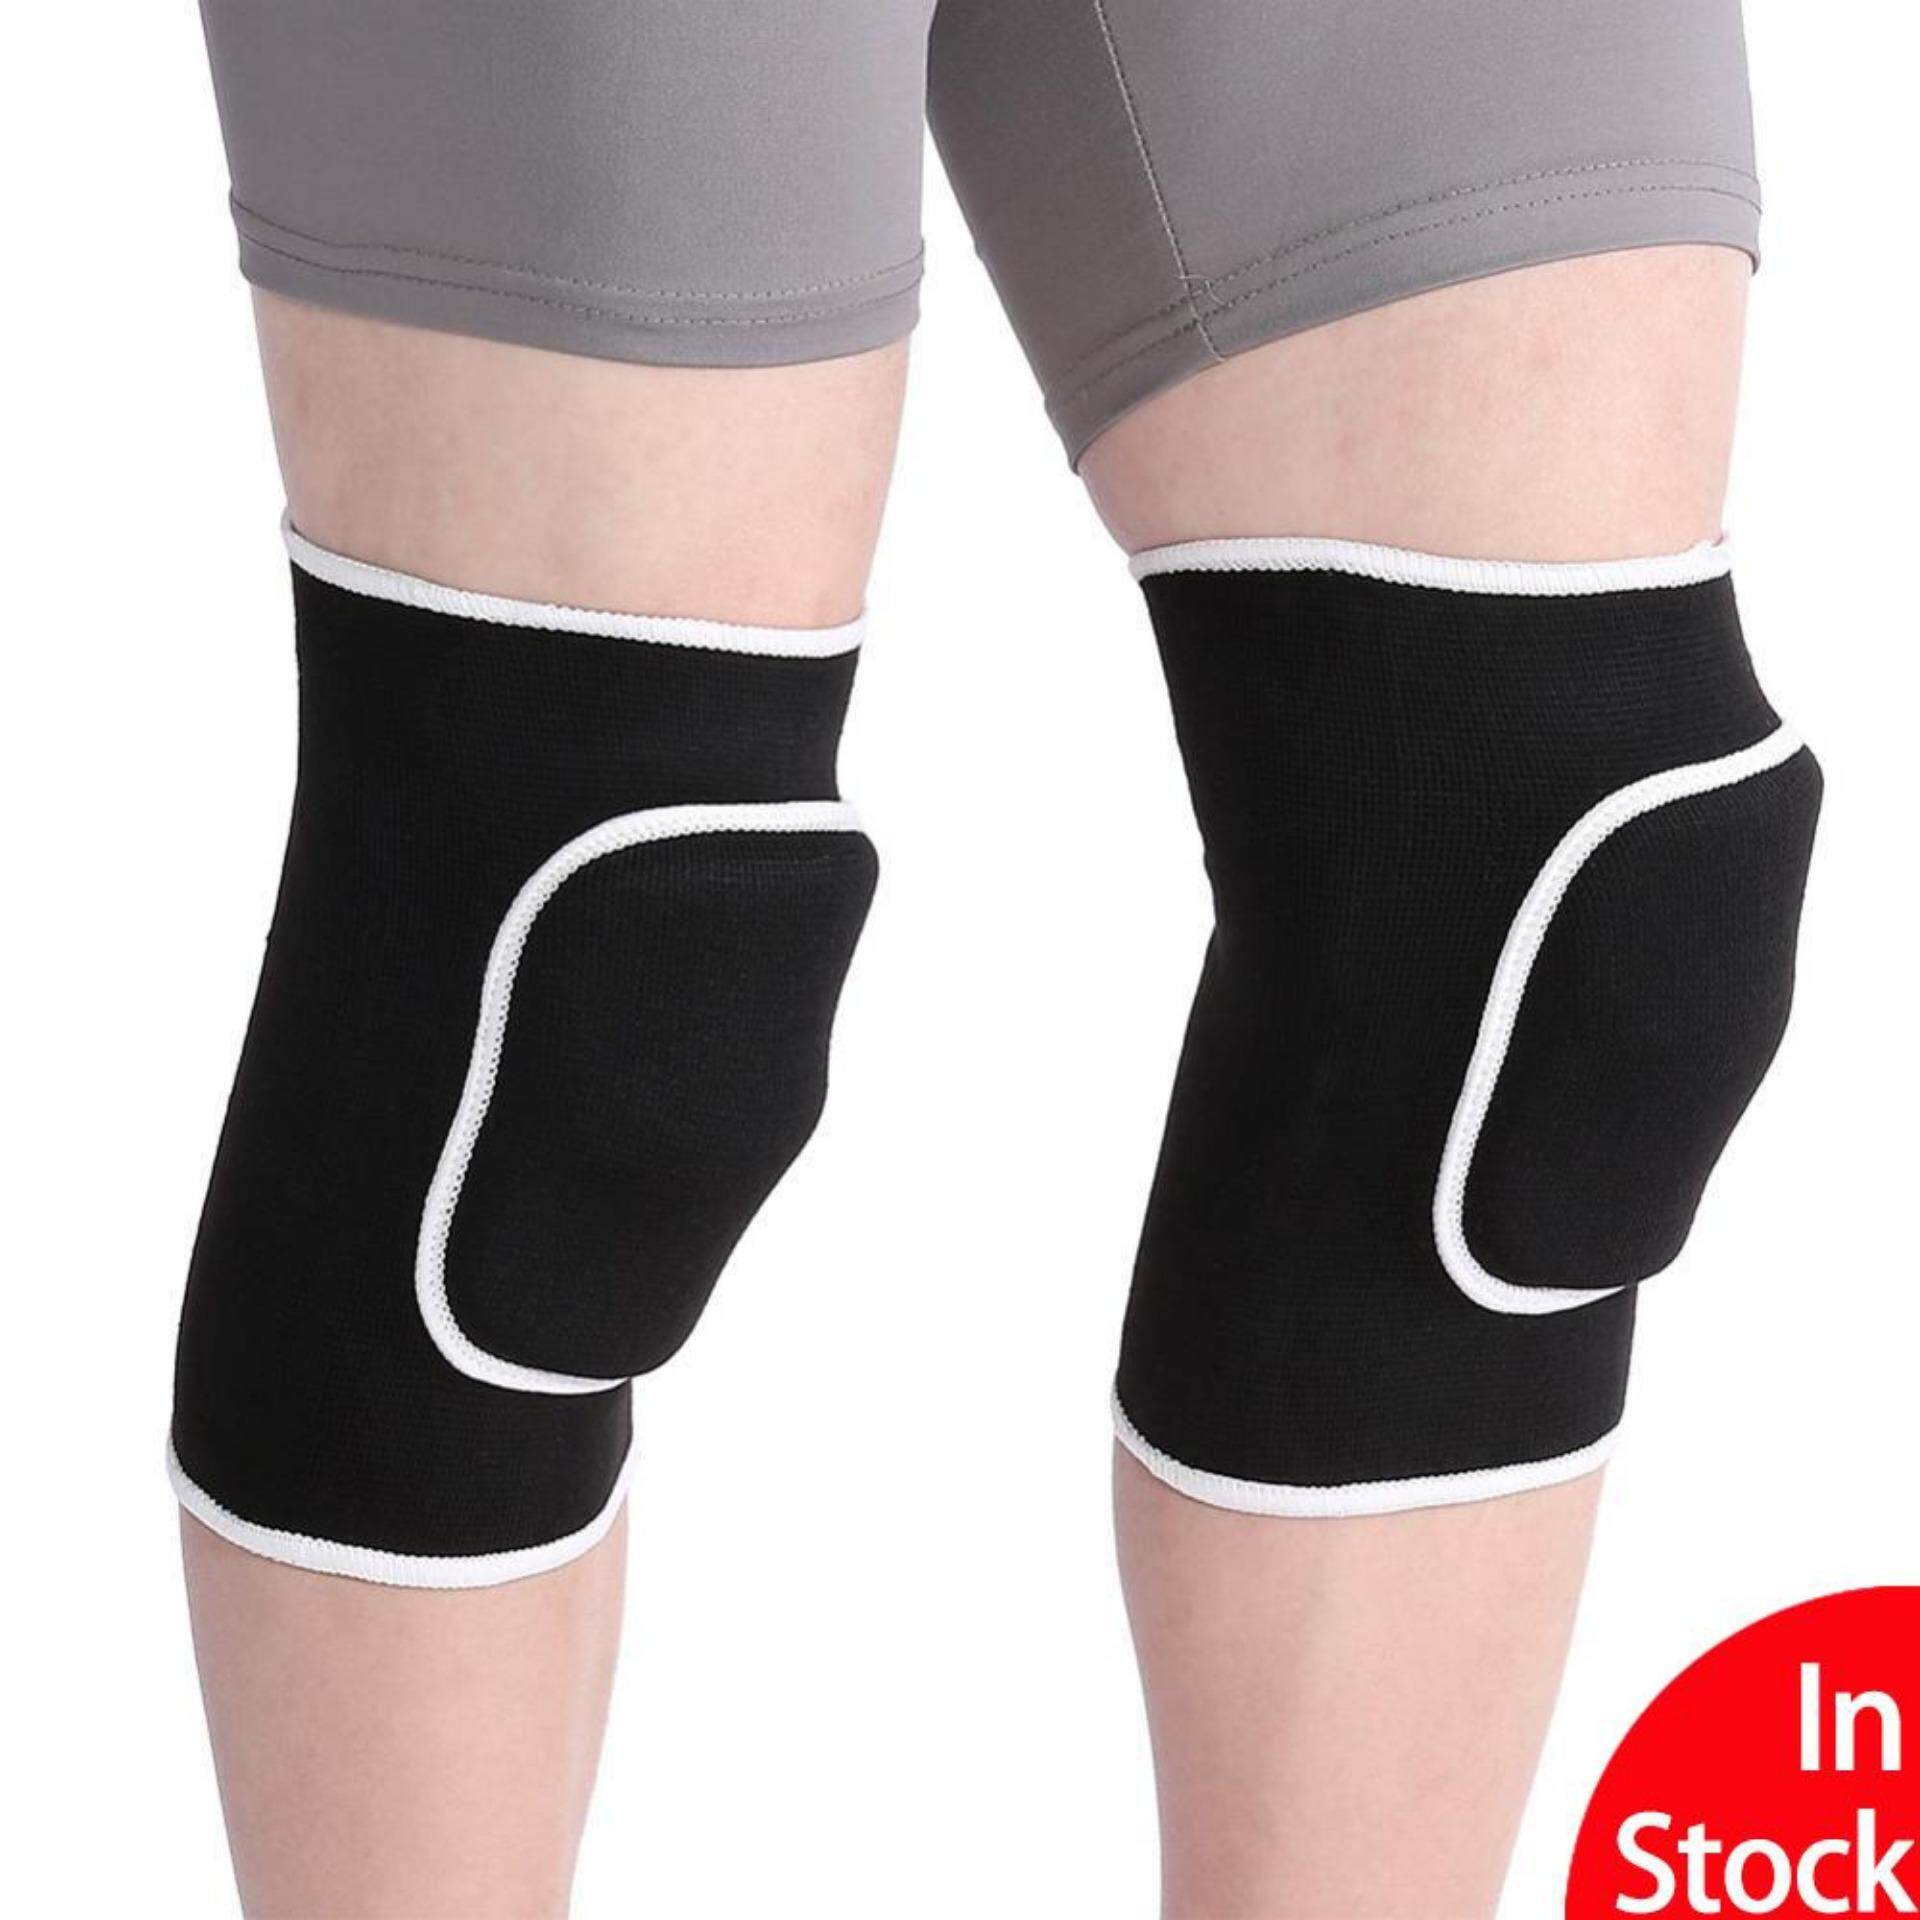 c0bafb6708 2pcs Sports Patella Support Belt Volleyball Soccer Basketball Knee Pad  Fitness Knee Protector